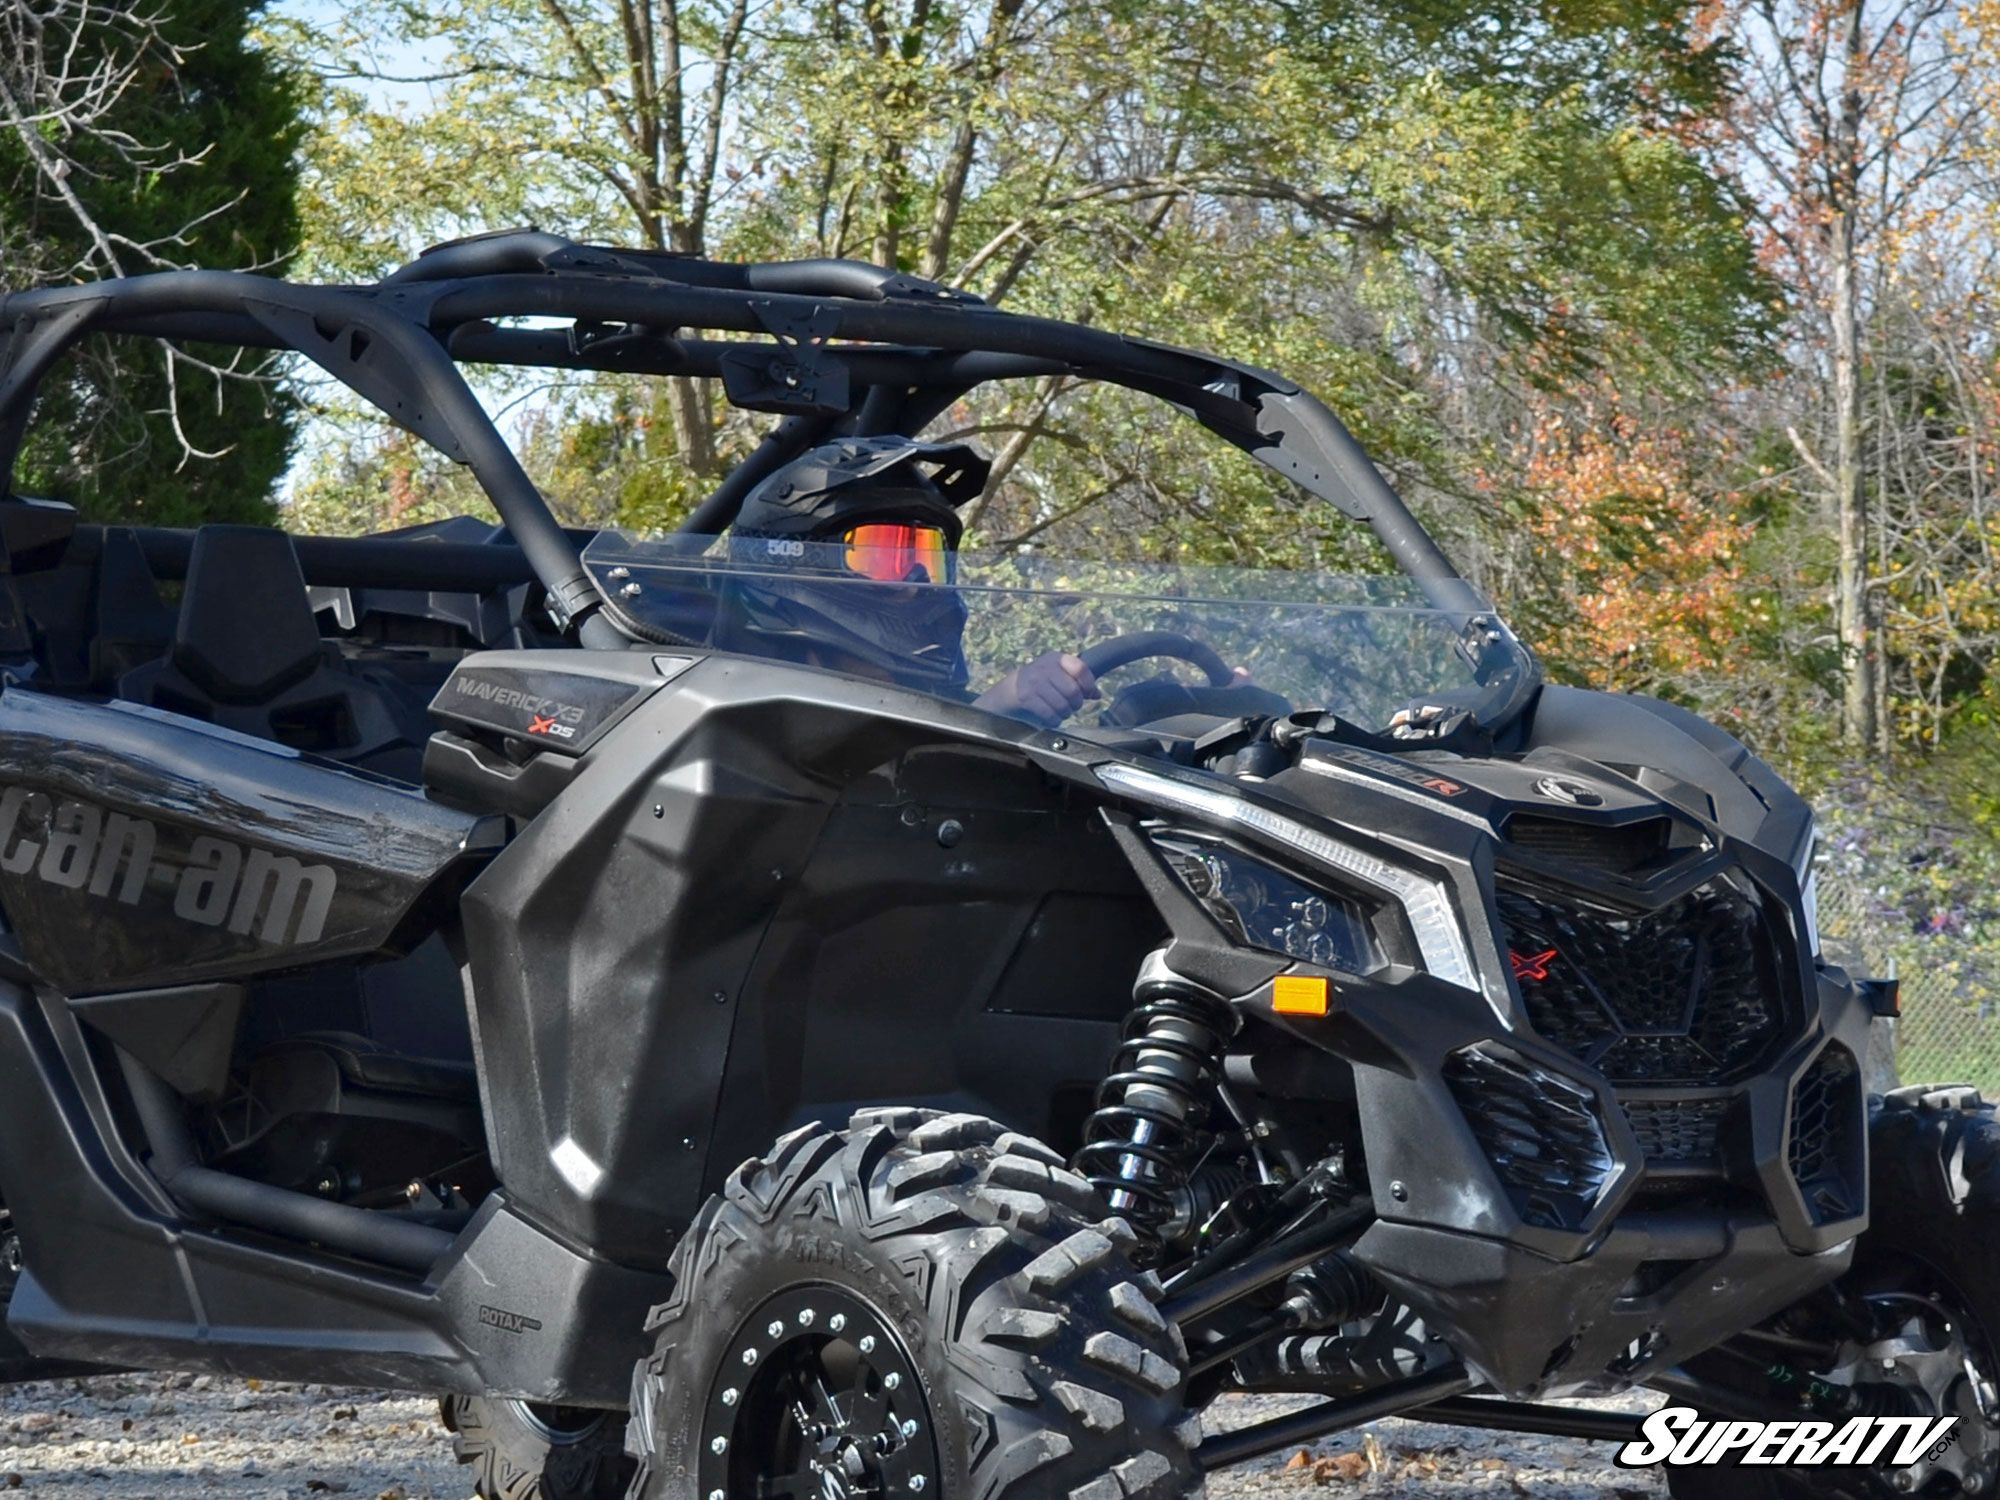 Top New Can-Am Maverick X3 Accessories - UTV Guide